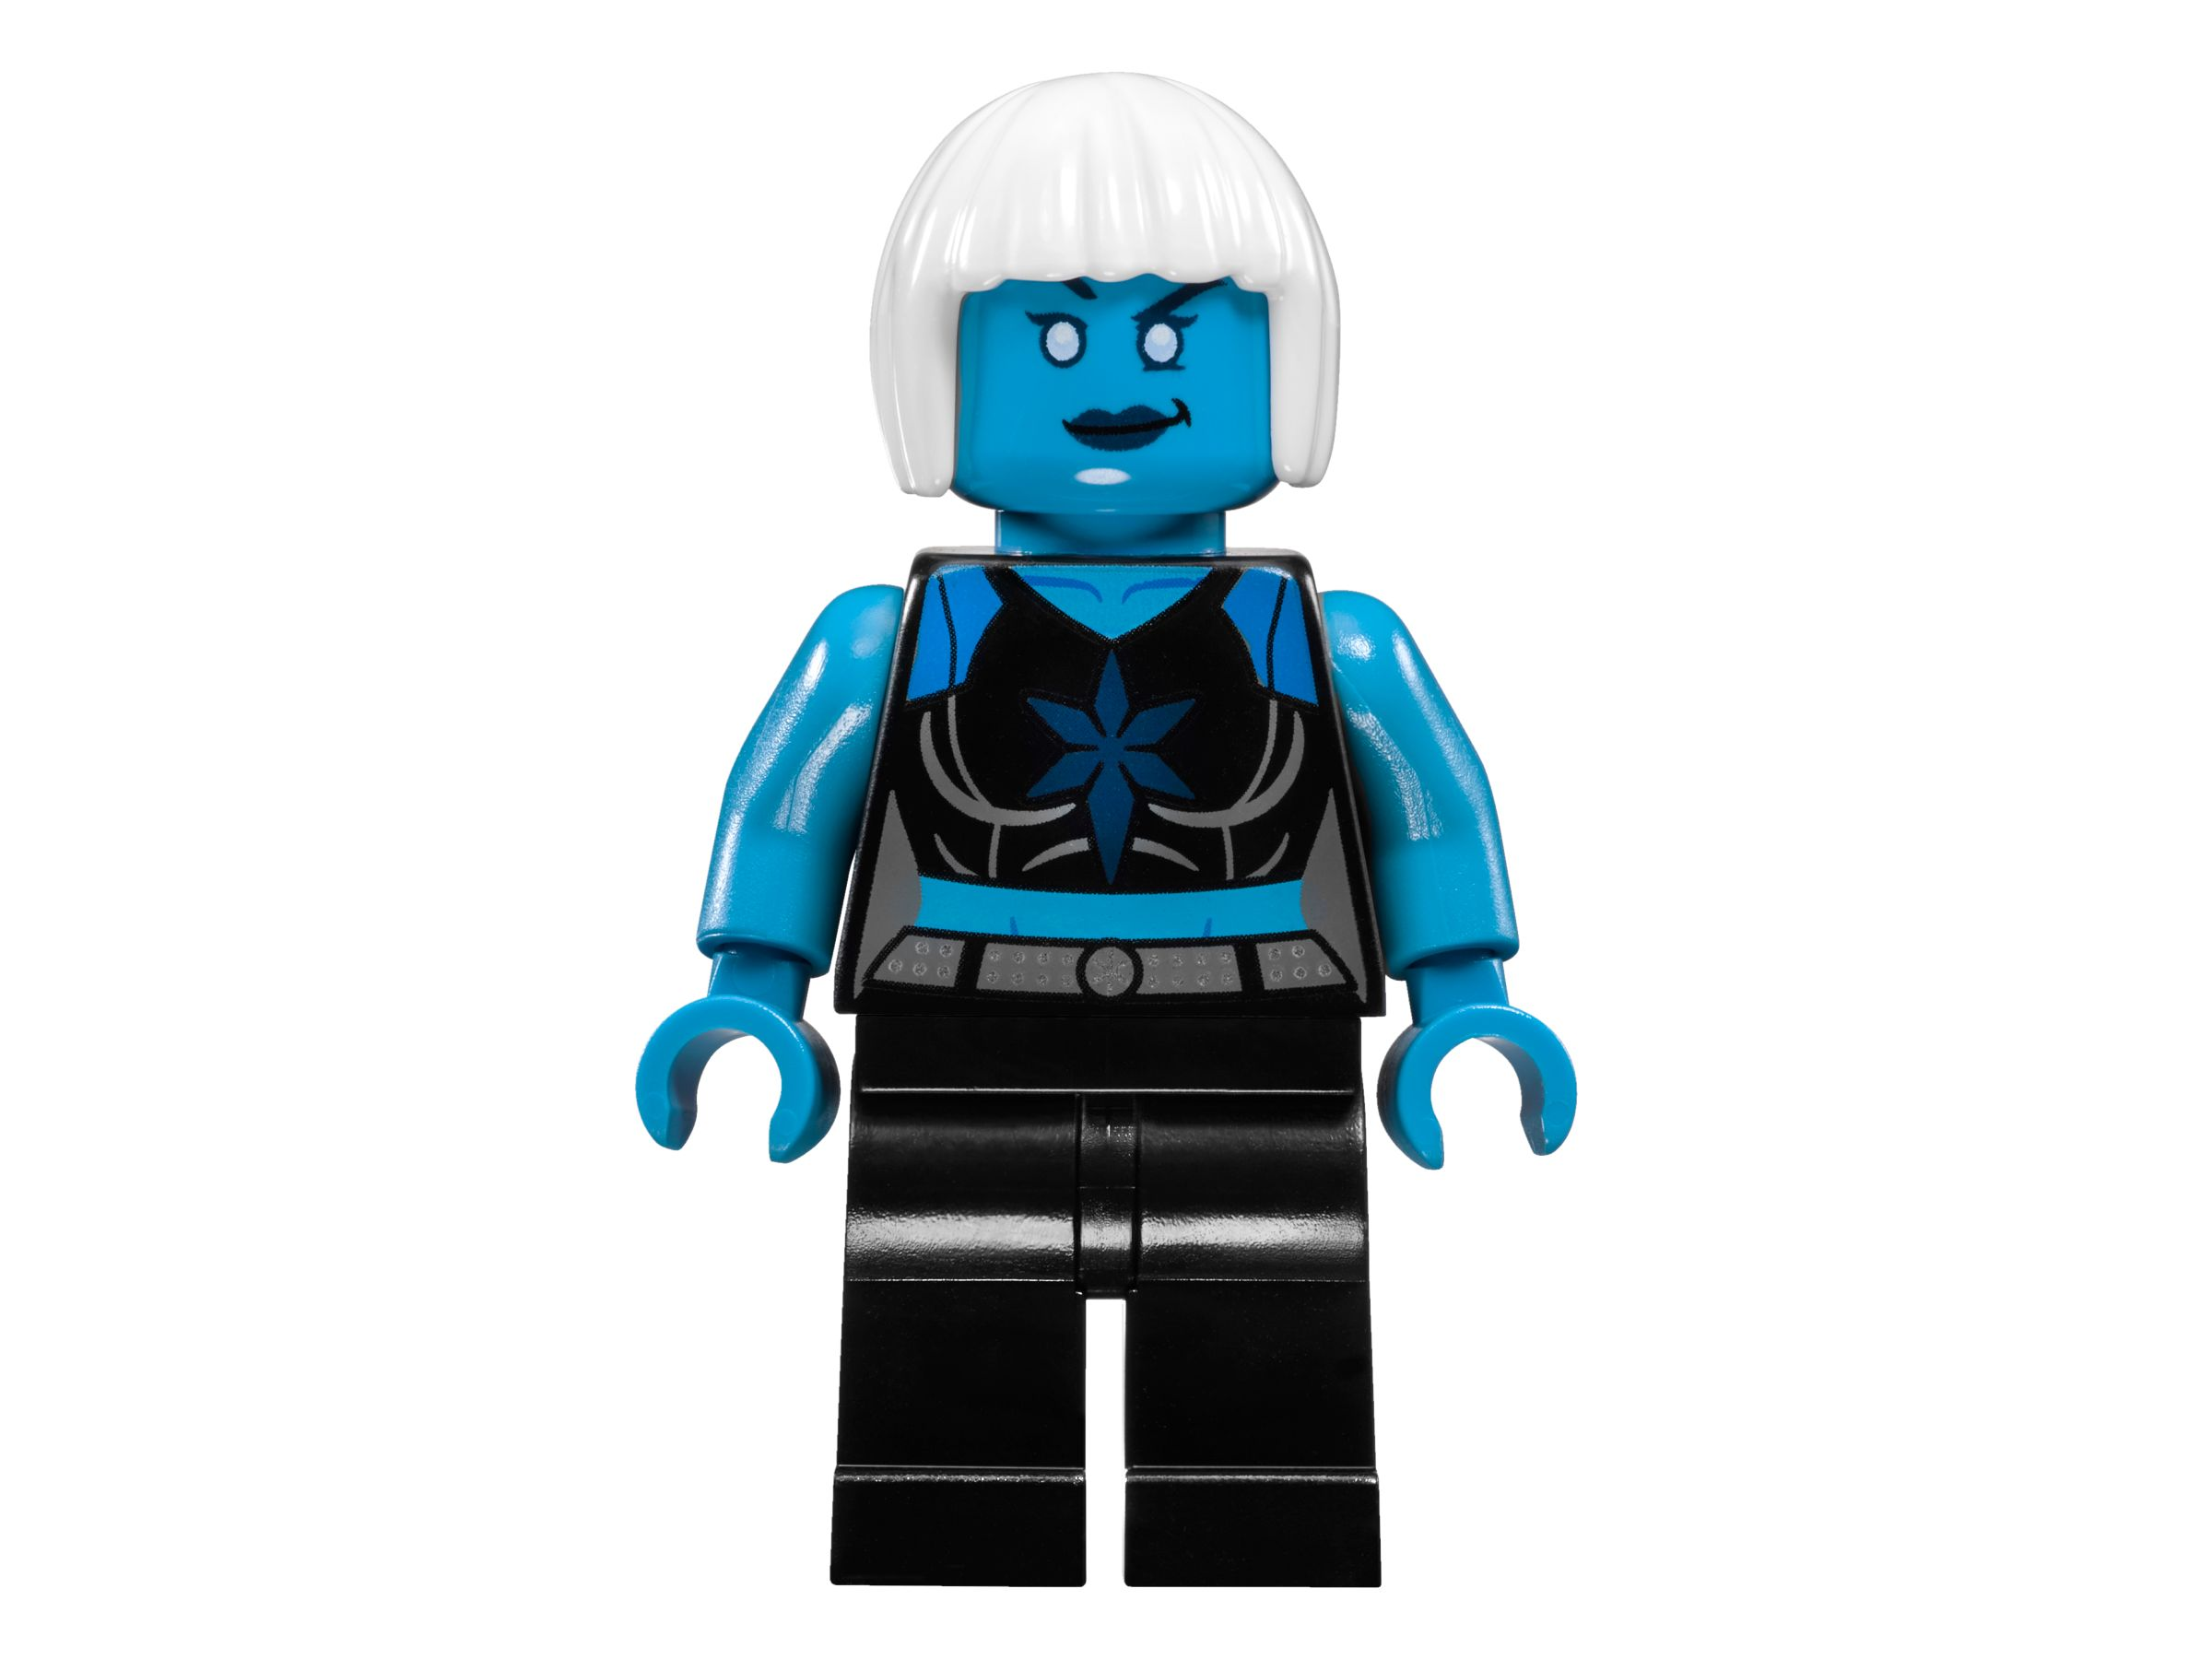 LEGO Super Heroes 76098 Speed Force Freeze Verfolgungsjagd LEGO_76098_alt8.jpg